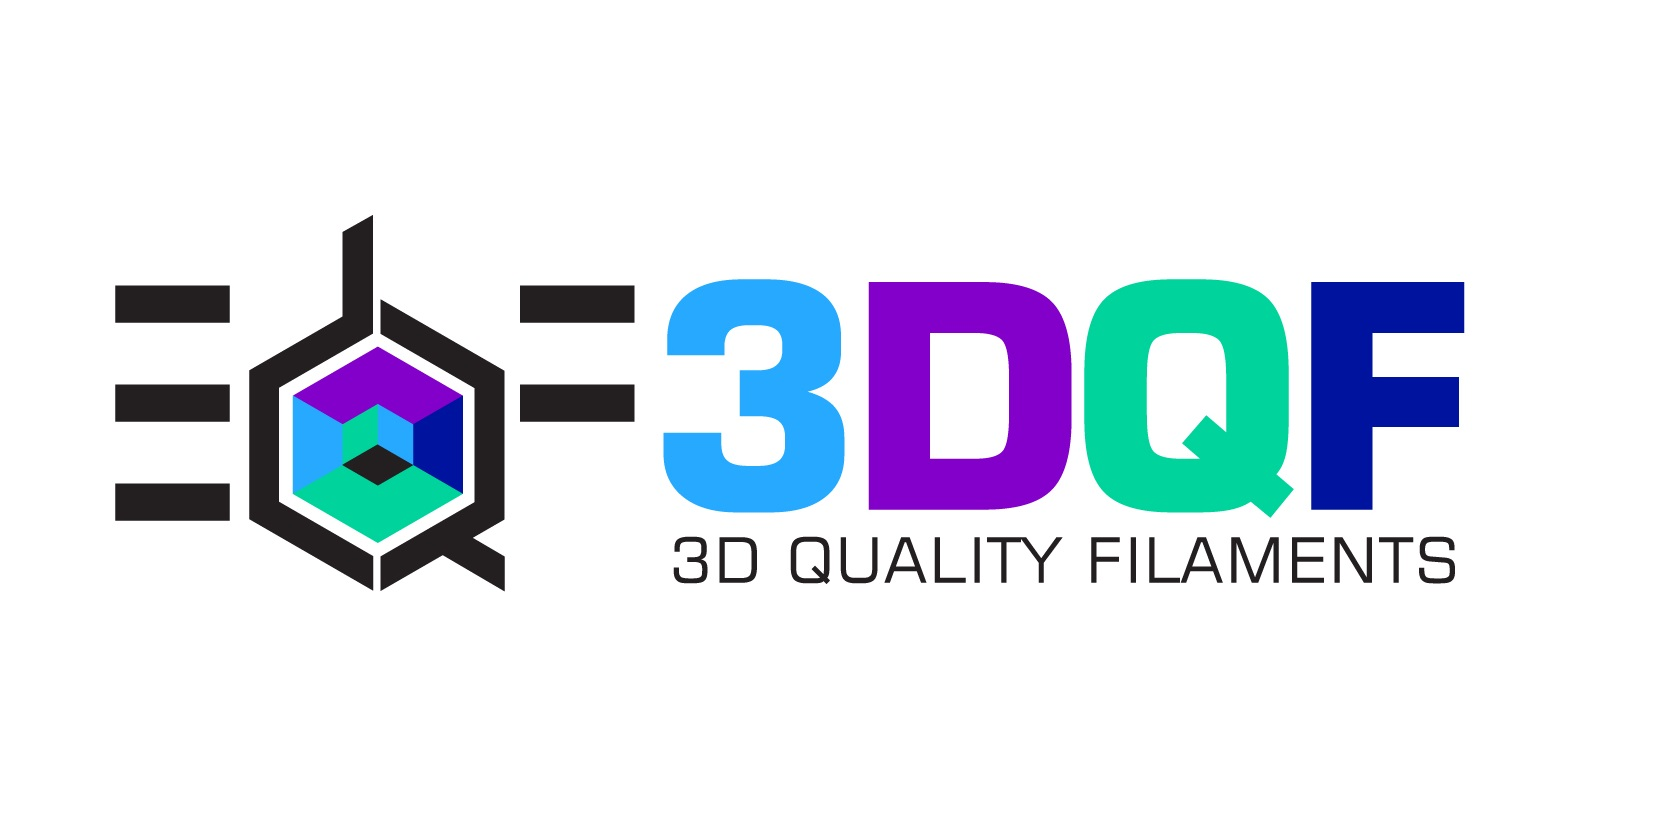 3D Quality Filaments, UK Made Printing Filaments